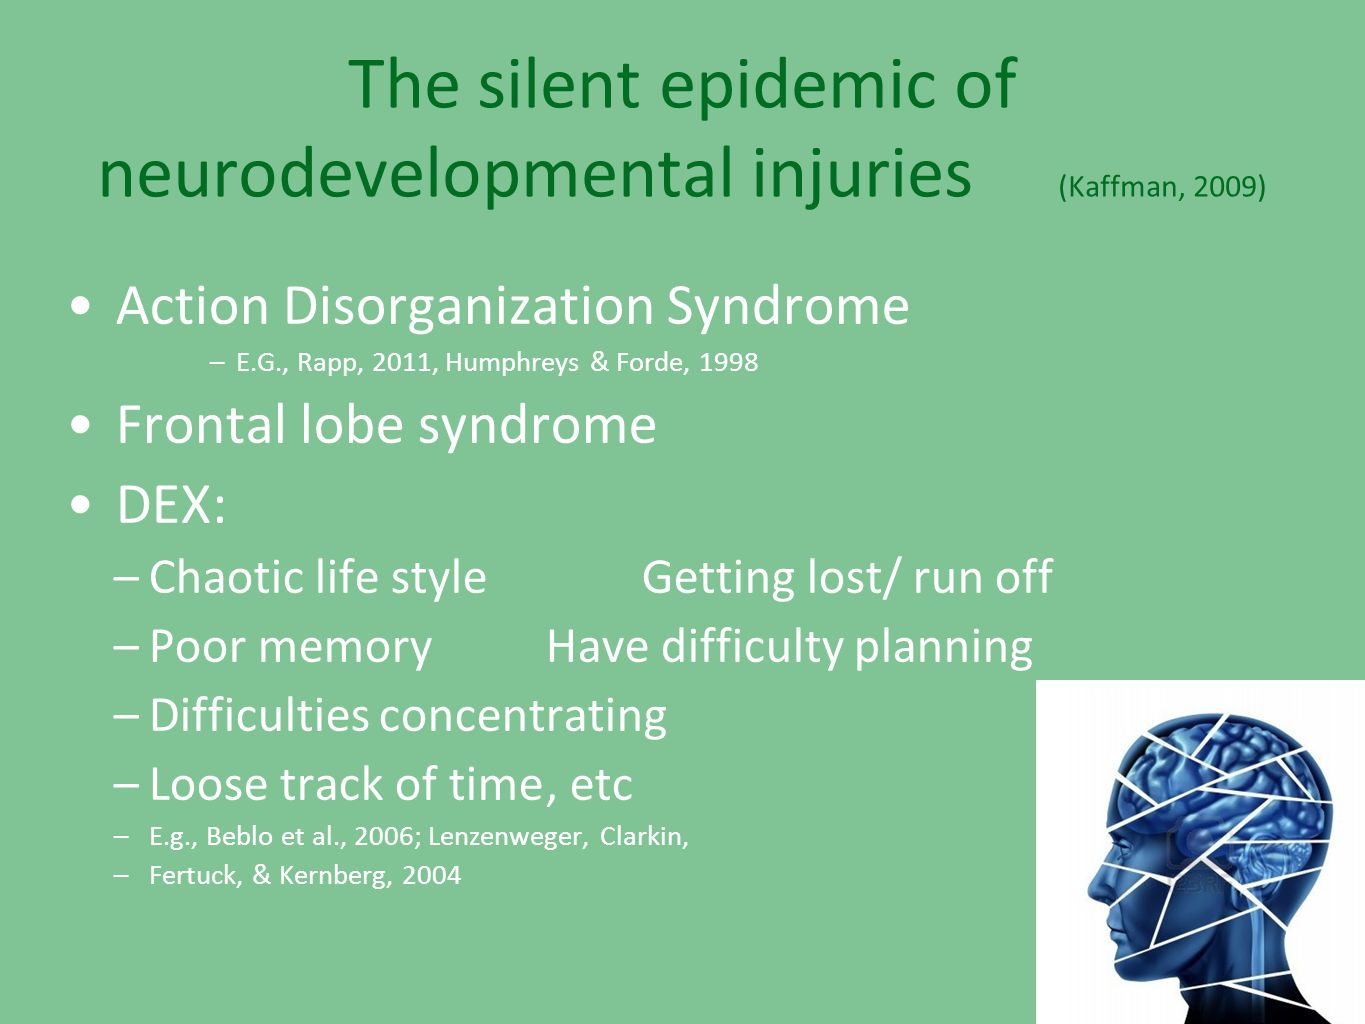 The silent epidemic of neurodevelopmental injuries (Kaffman, 2009)